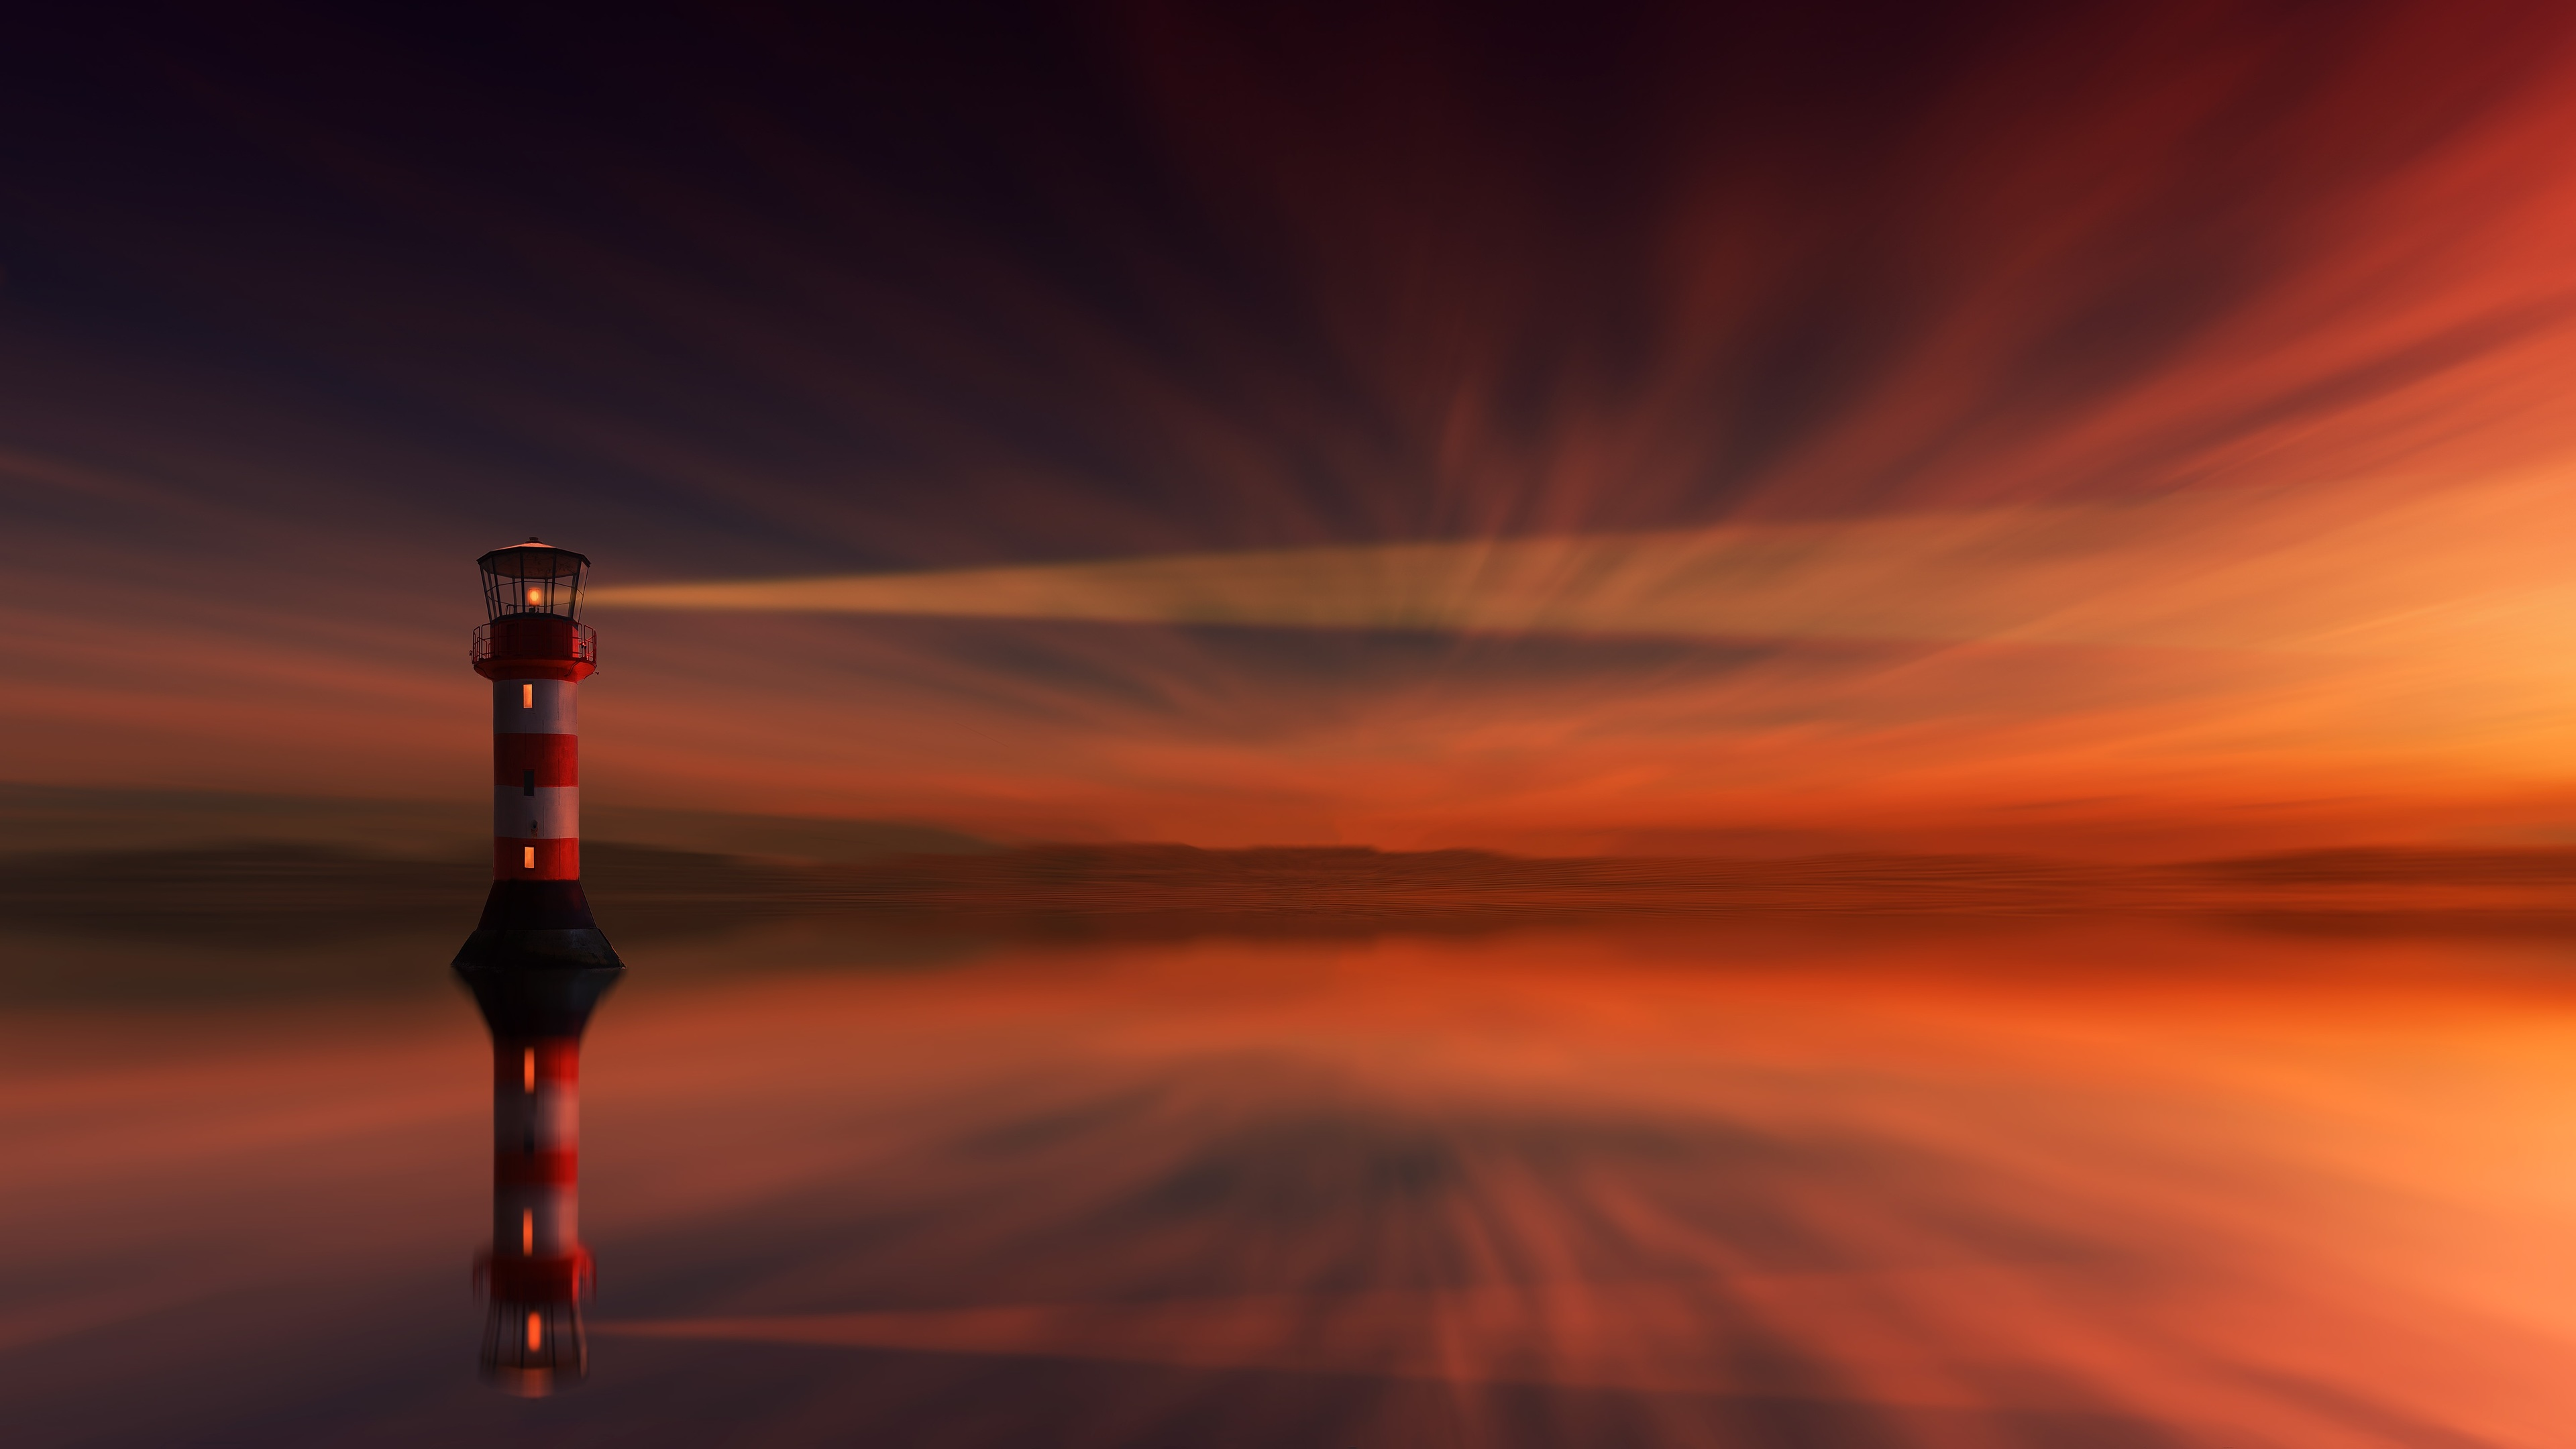 4k lighthouse 1540136468 - 4k Lighthouse - nature wallpapers, lighthouse wallpapers, hd-wallpapers, 5k wallpapers, 4k-wallpapers